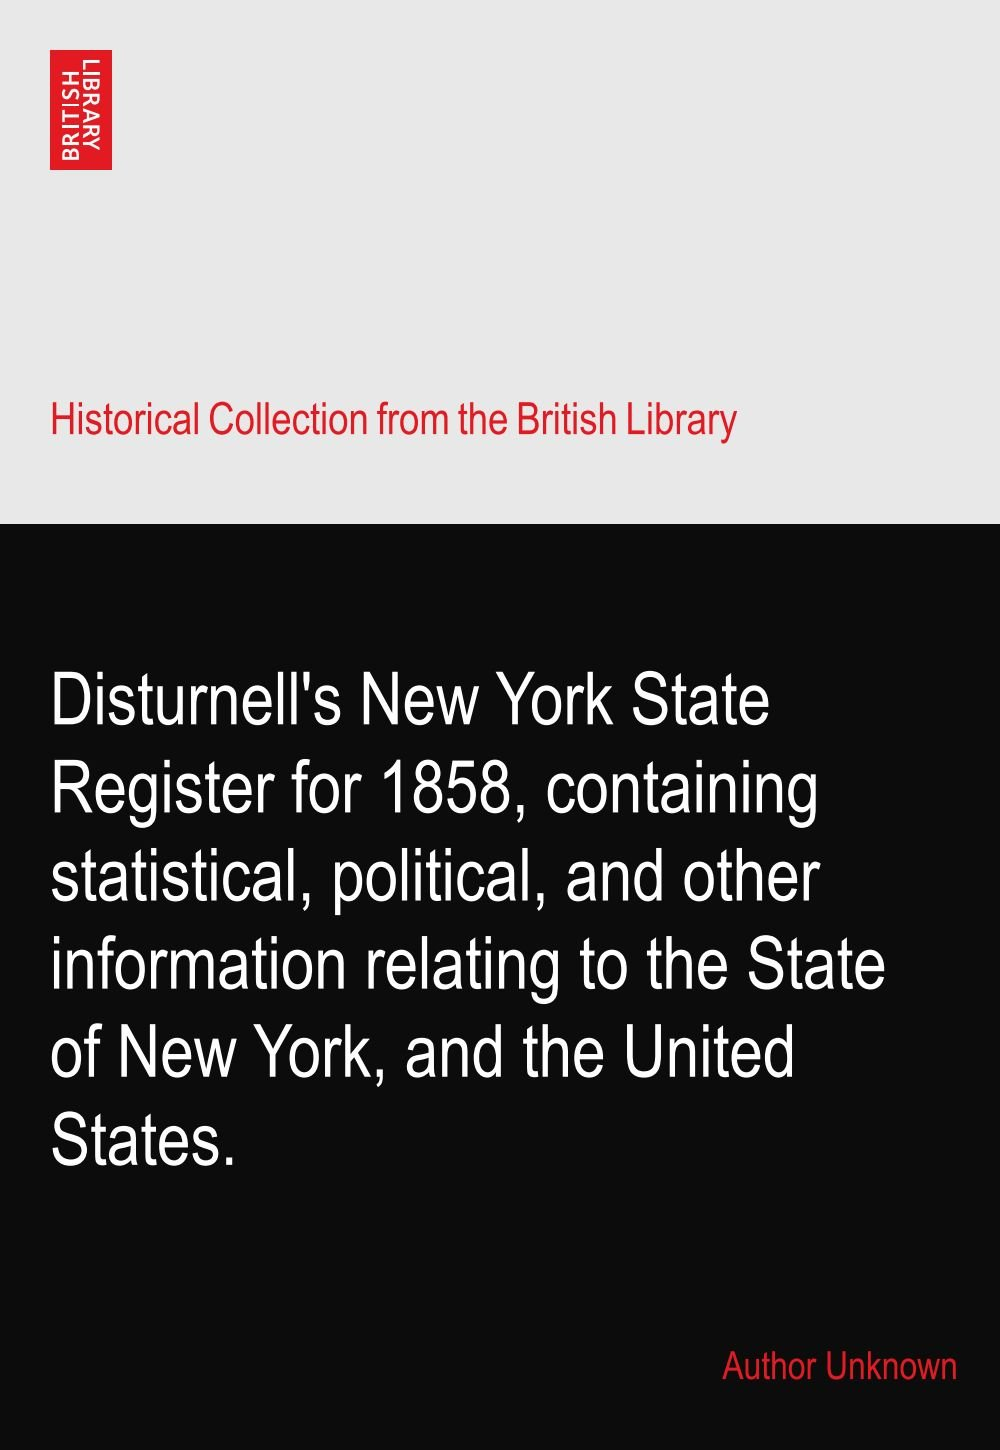 Disturnell's New York State Register for 1858, containing statistical, political, and other information relating to the State of New York, and the United States. pdf